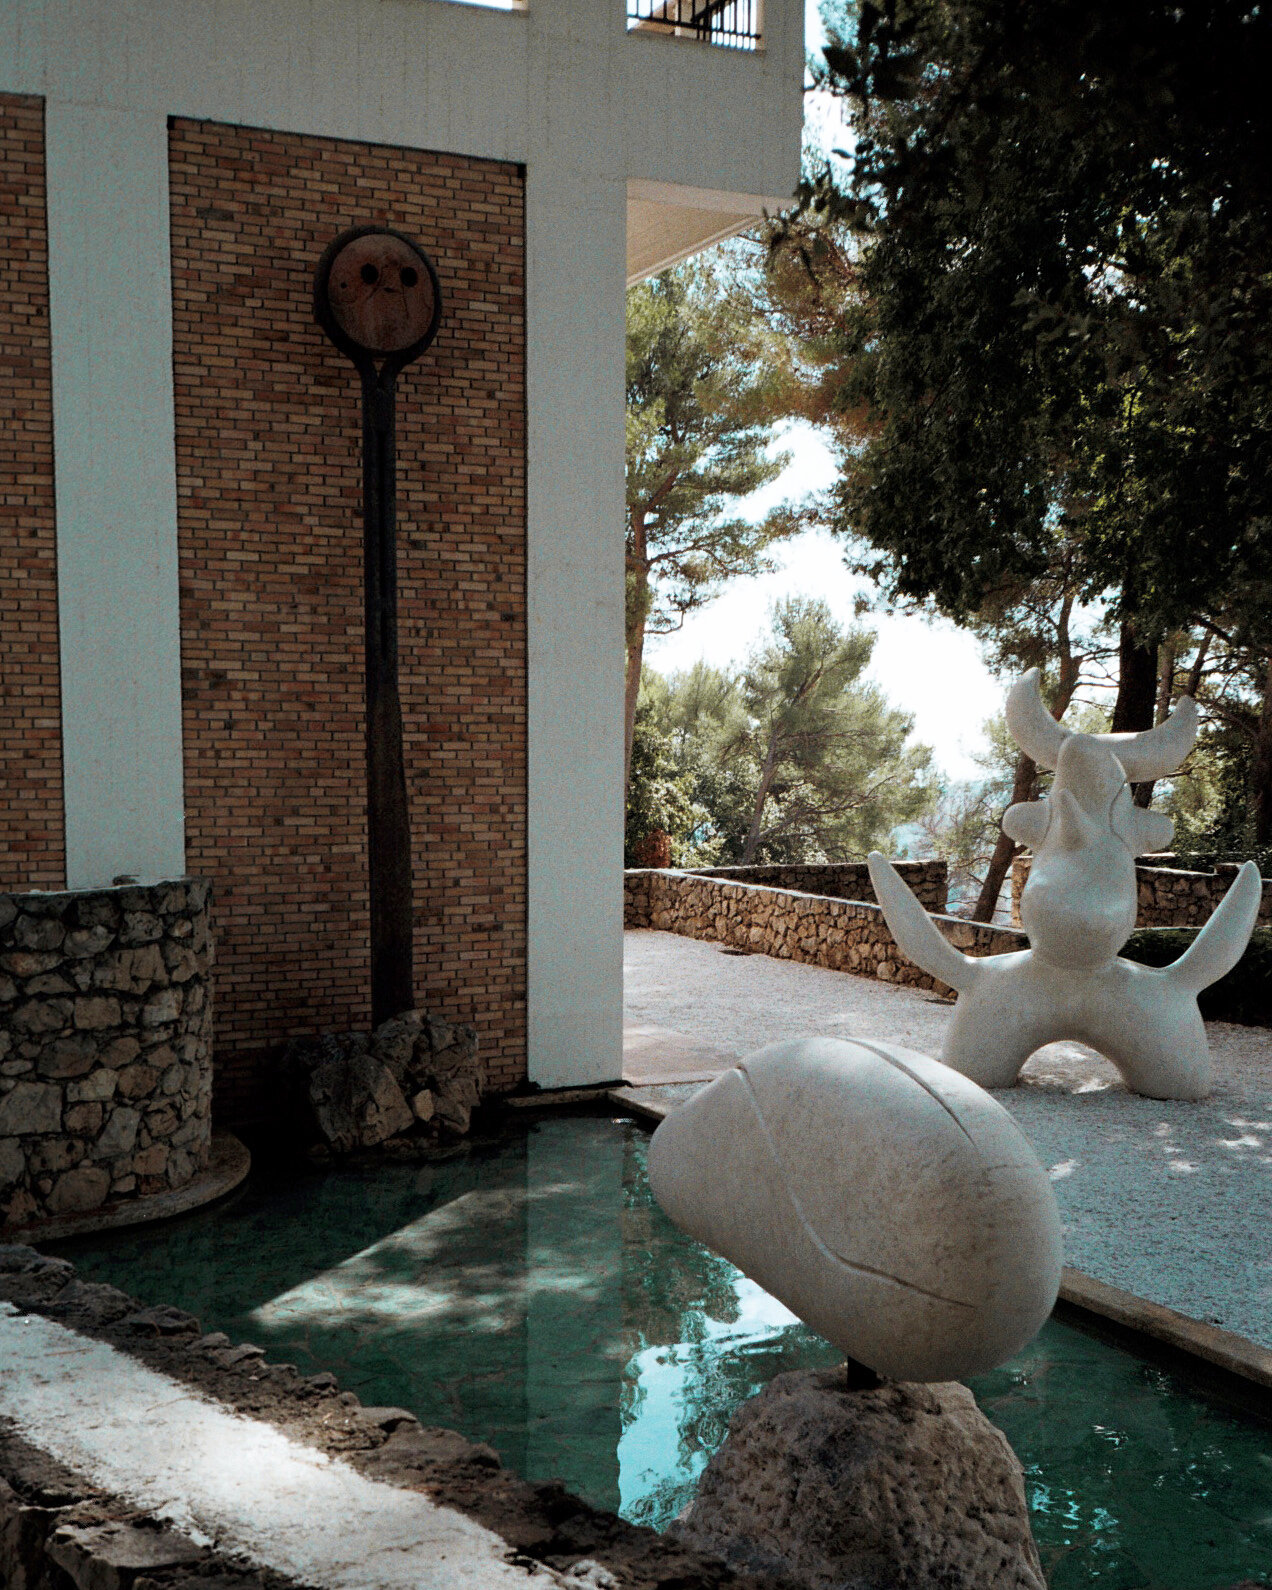 fondation maeght 01.jpg